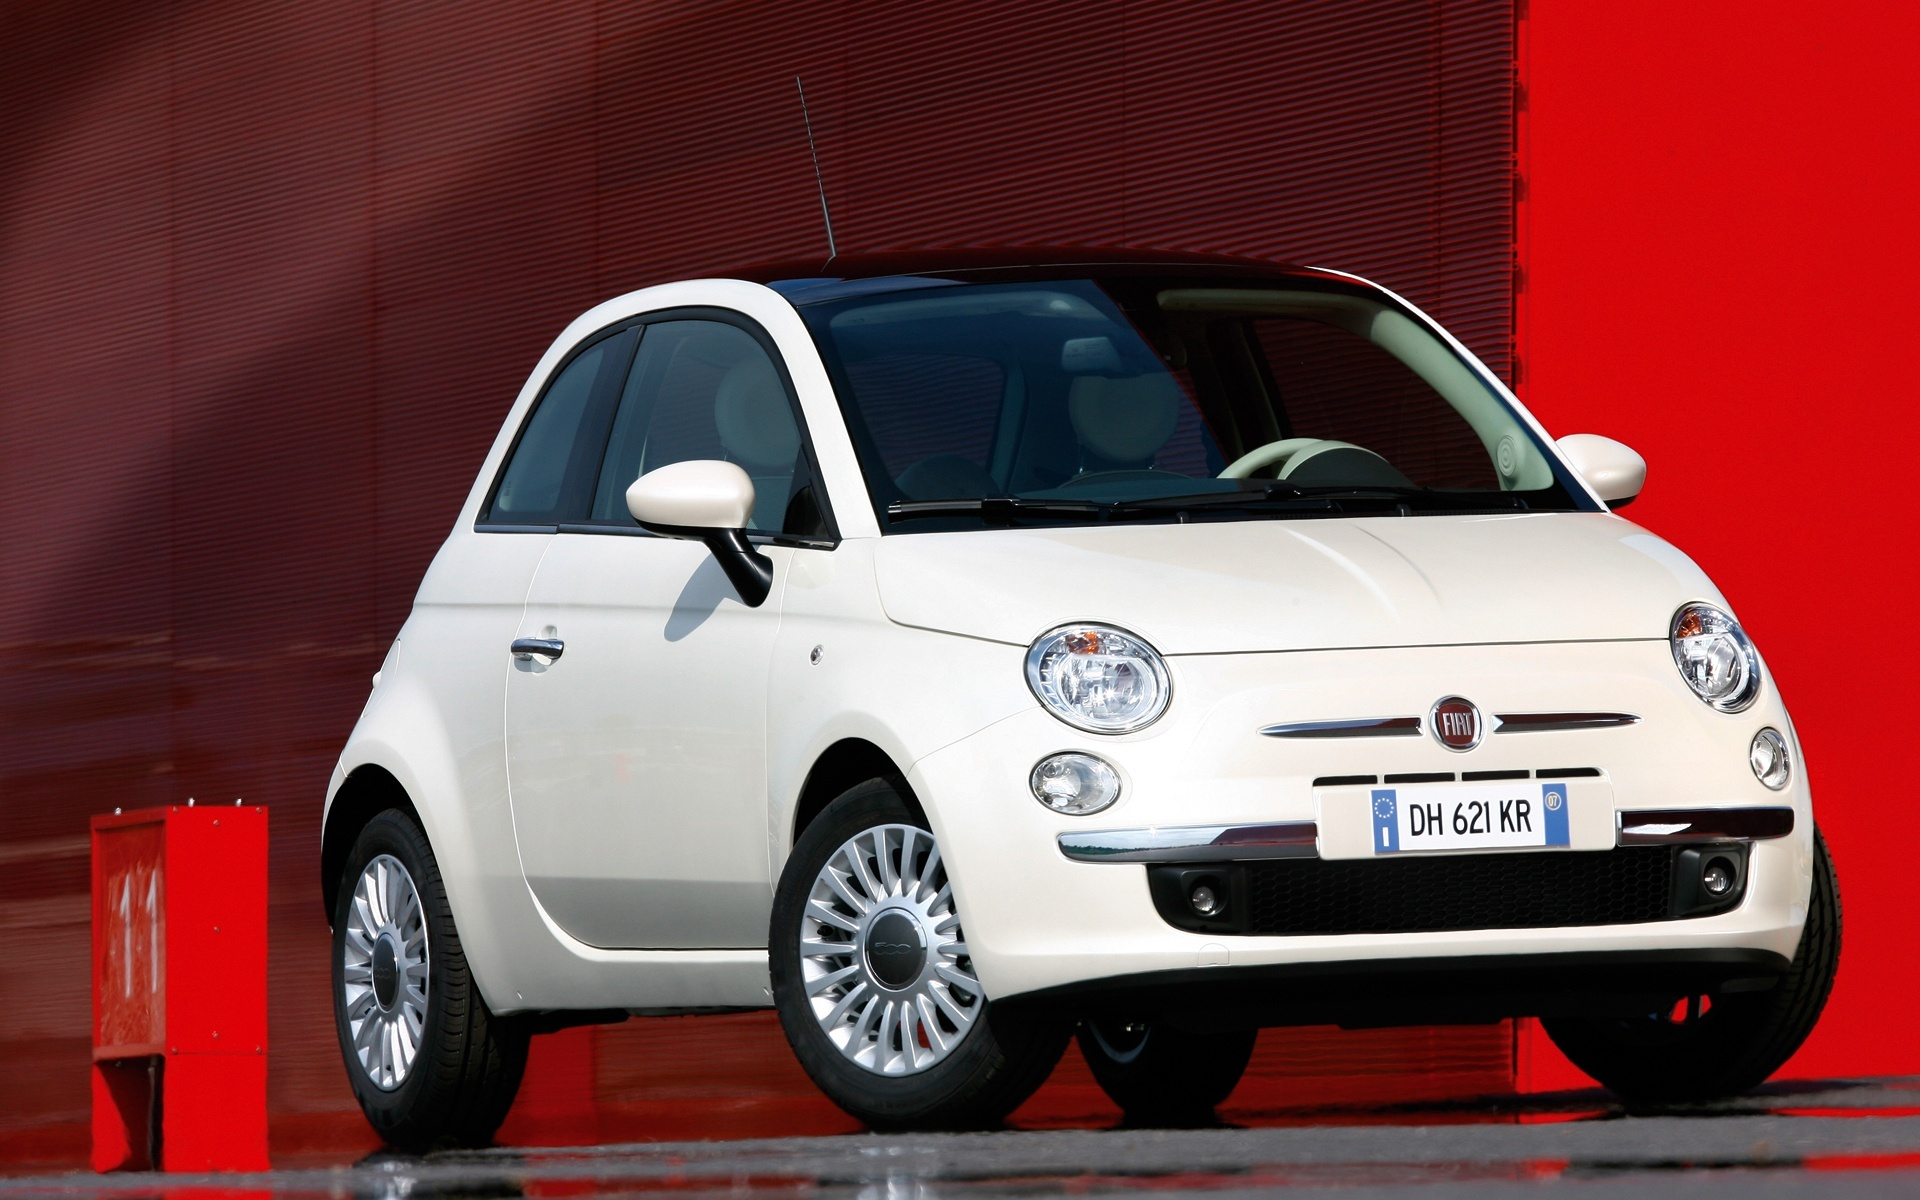 fiat pop 500 front angle wallpaper image editor free download